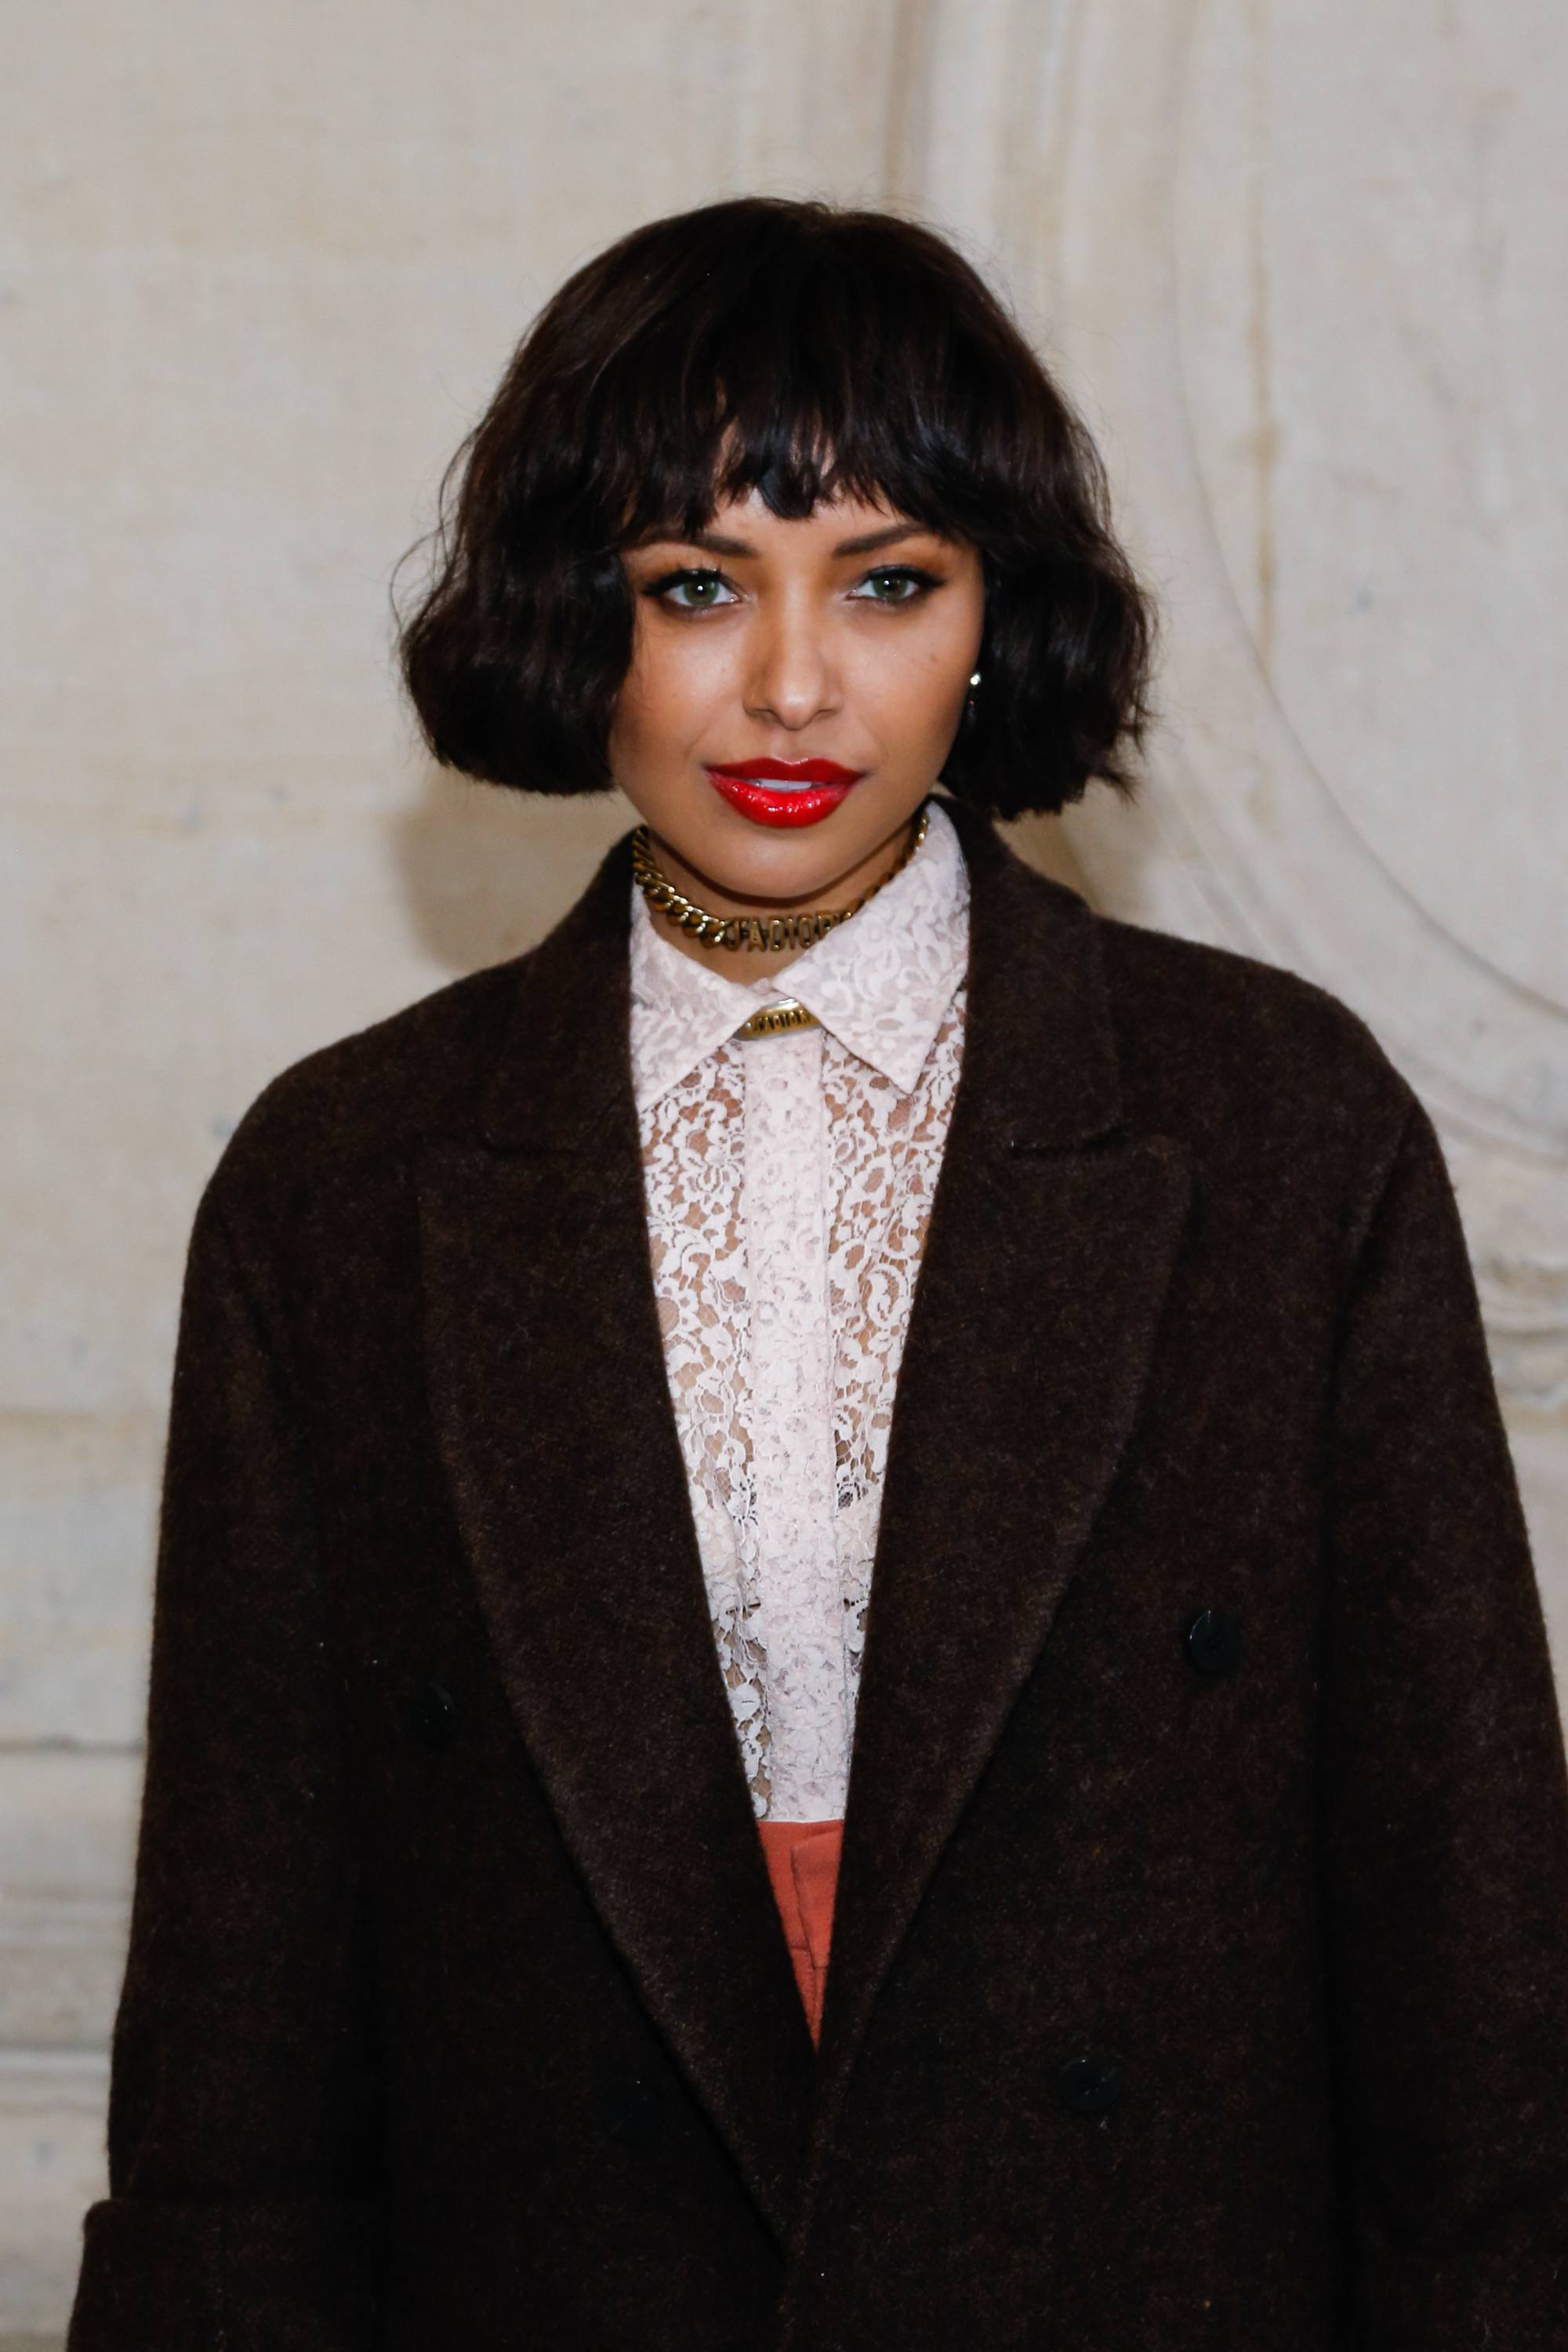 Thick hairstyles: Kat Graham with short thick wavy hair with wispy bangs, wearing black blazer with white shirt